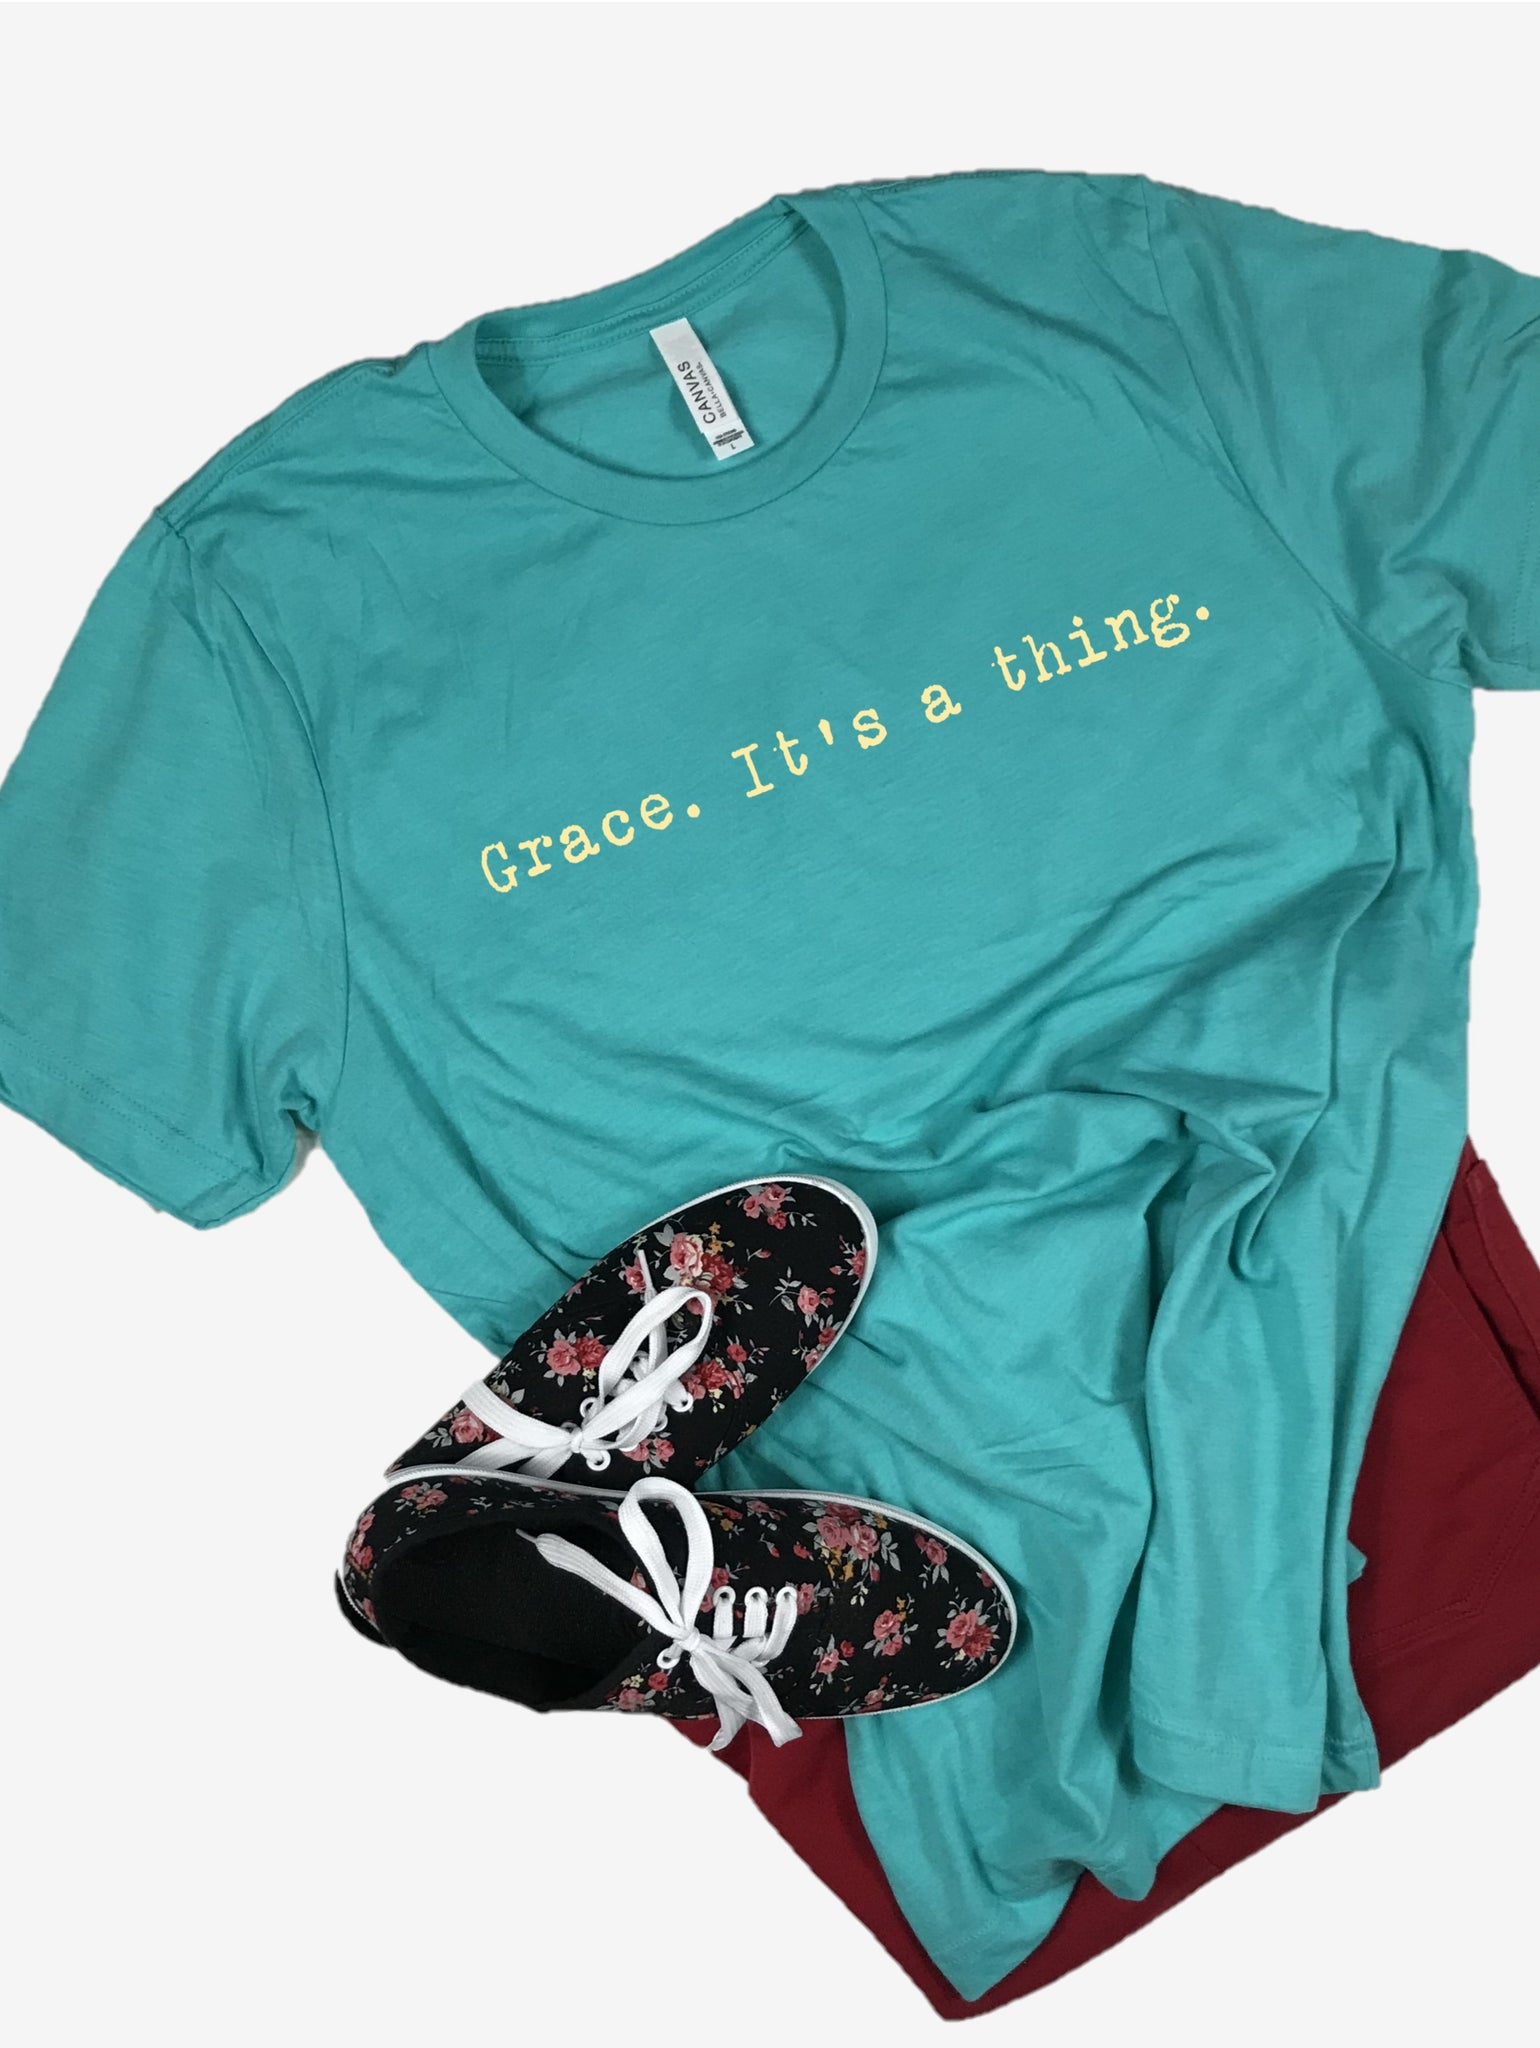 """Grace. It's a thing."" Short Sleeve Tee Shirt, Crew Neck, Sea Green"